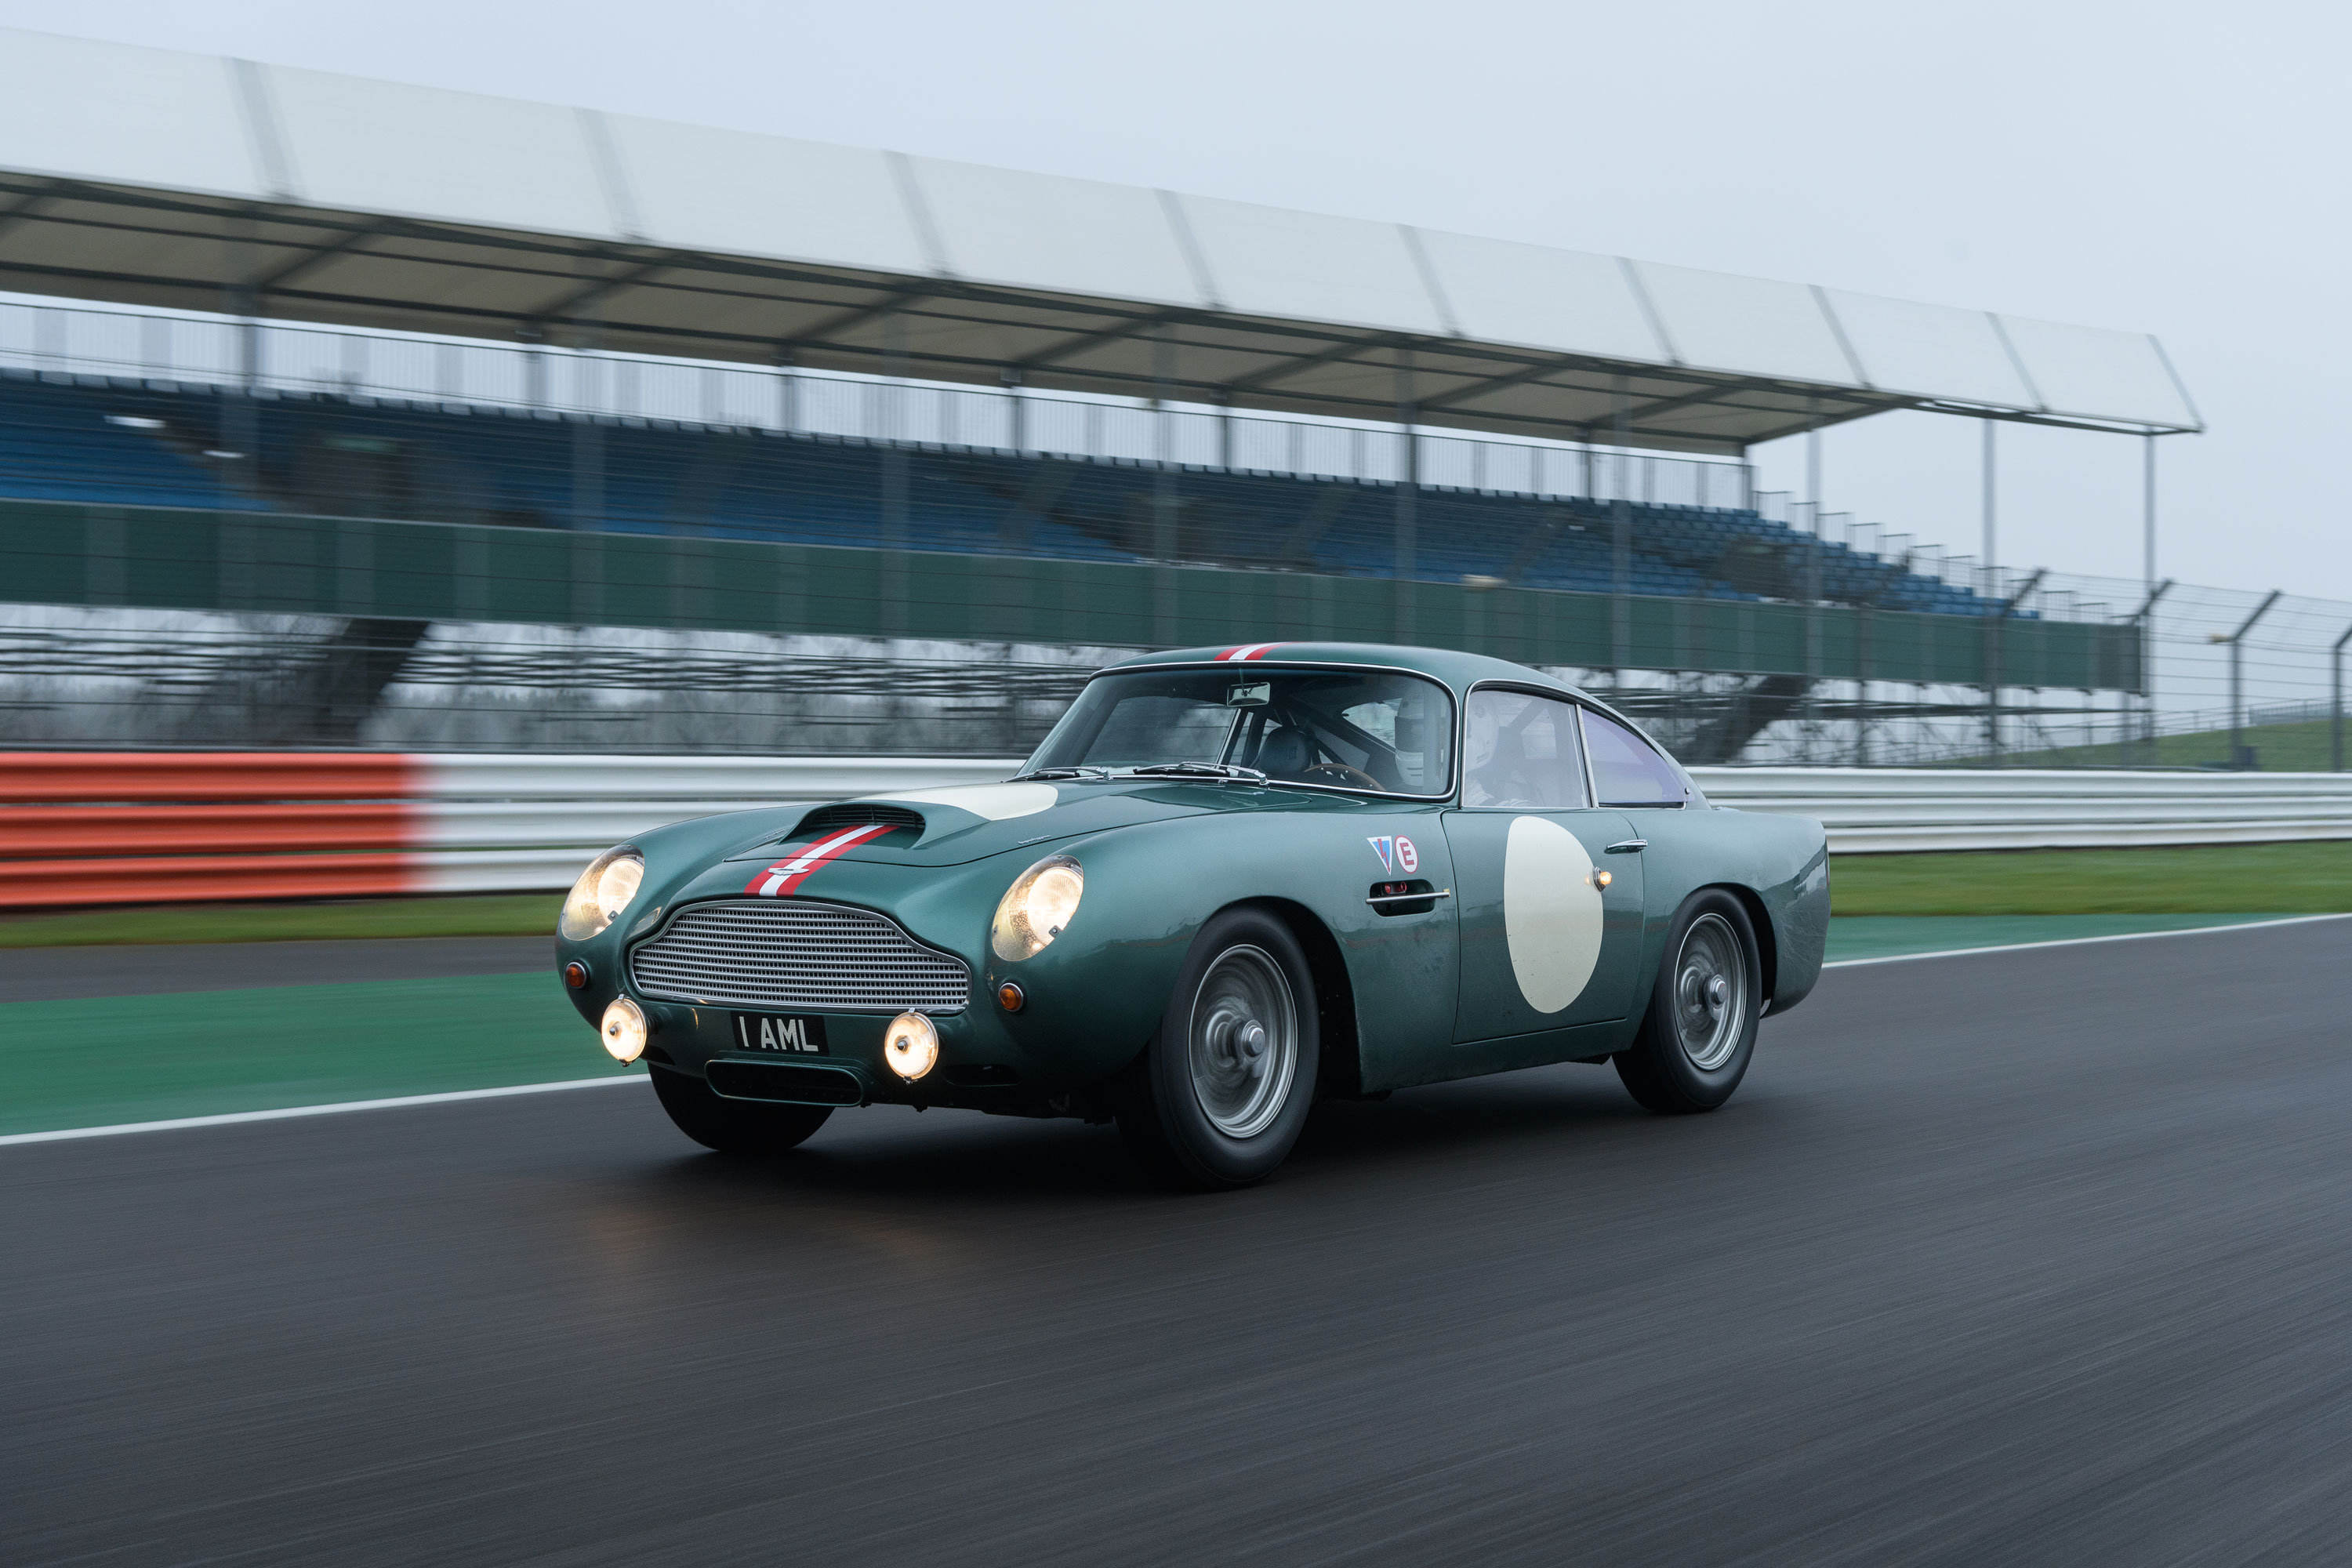 Green 1959 Aston Martin DB4 GT profile on the track